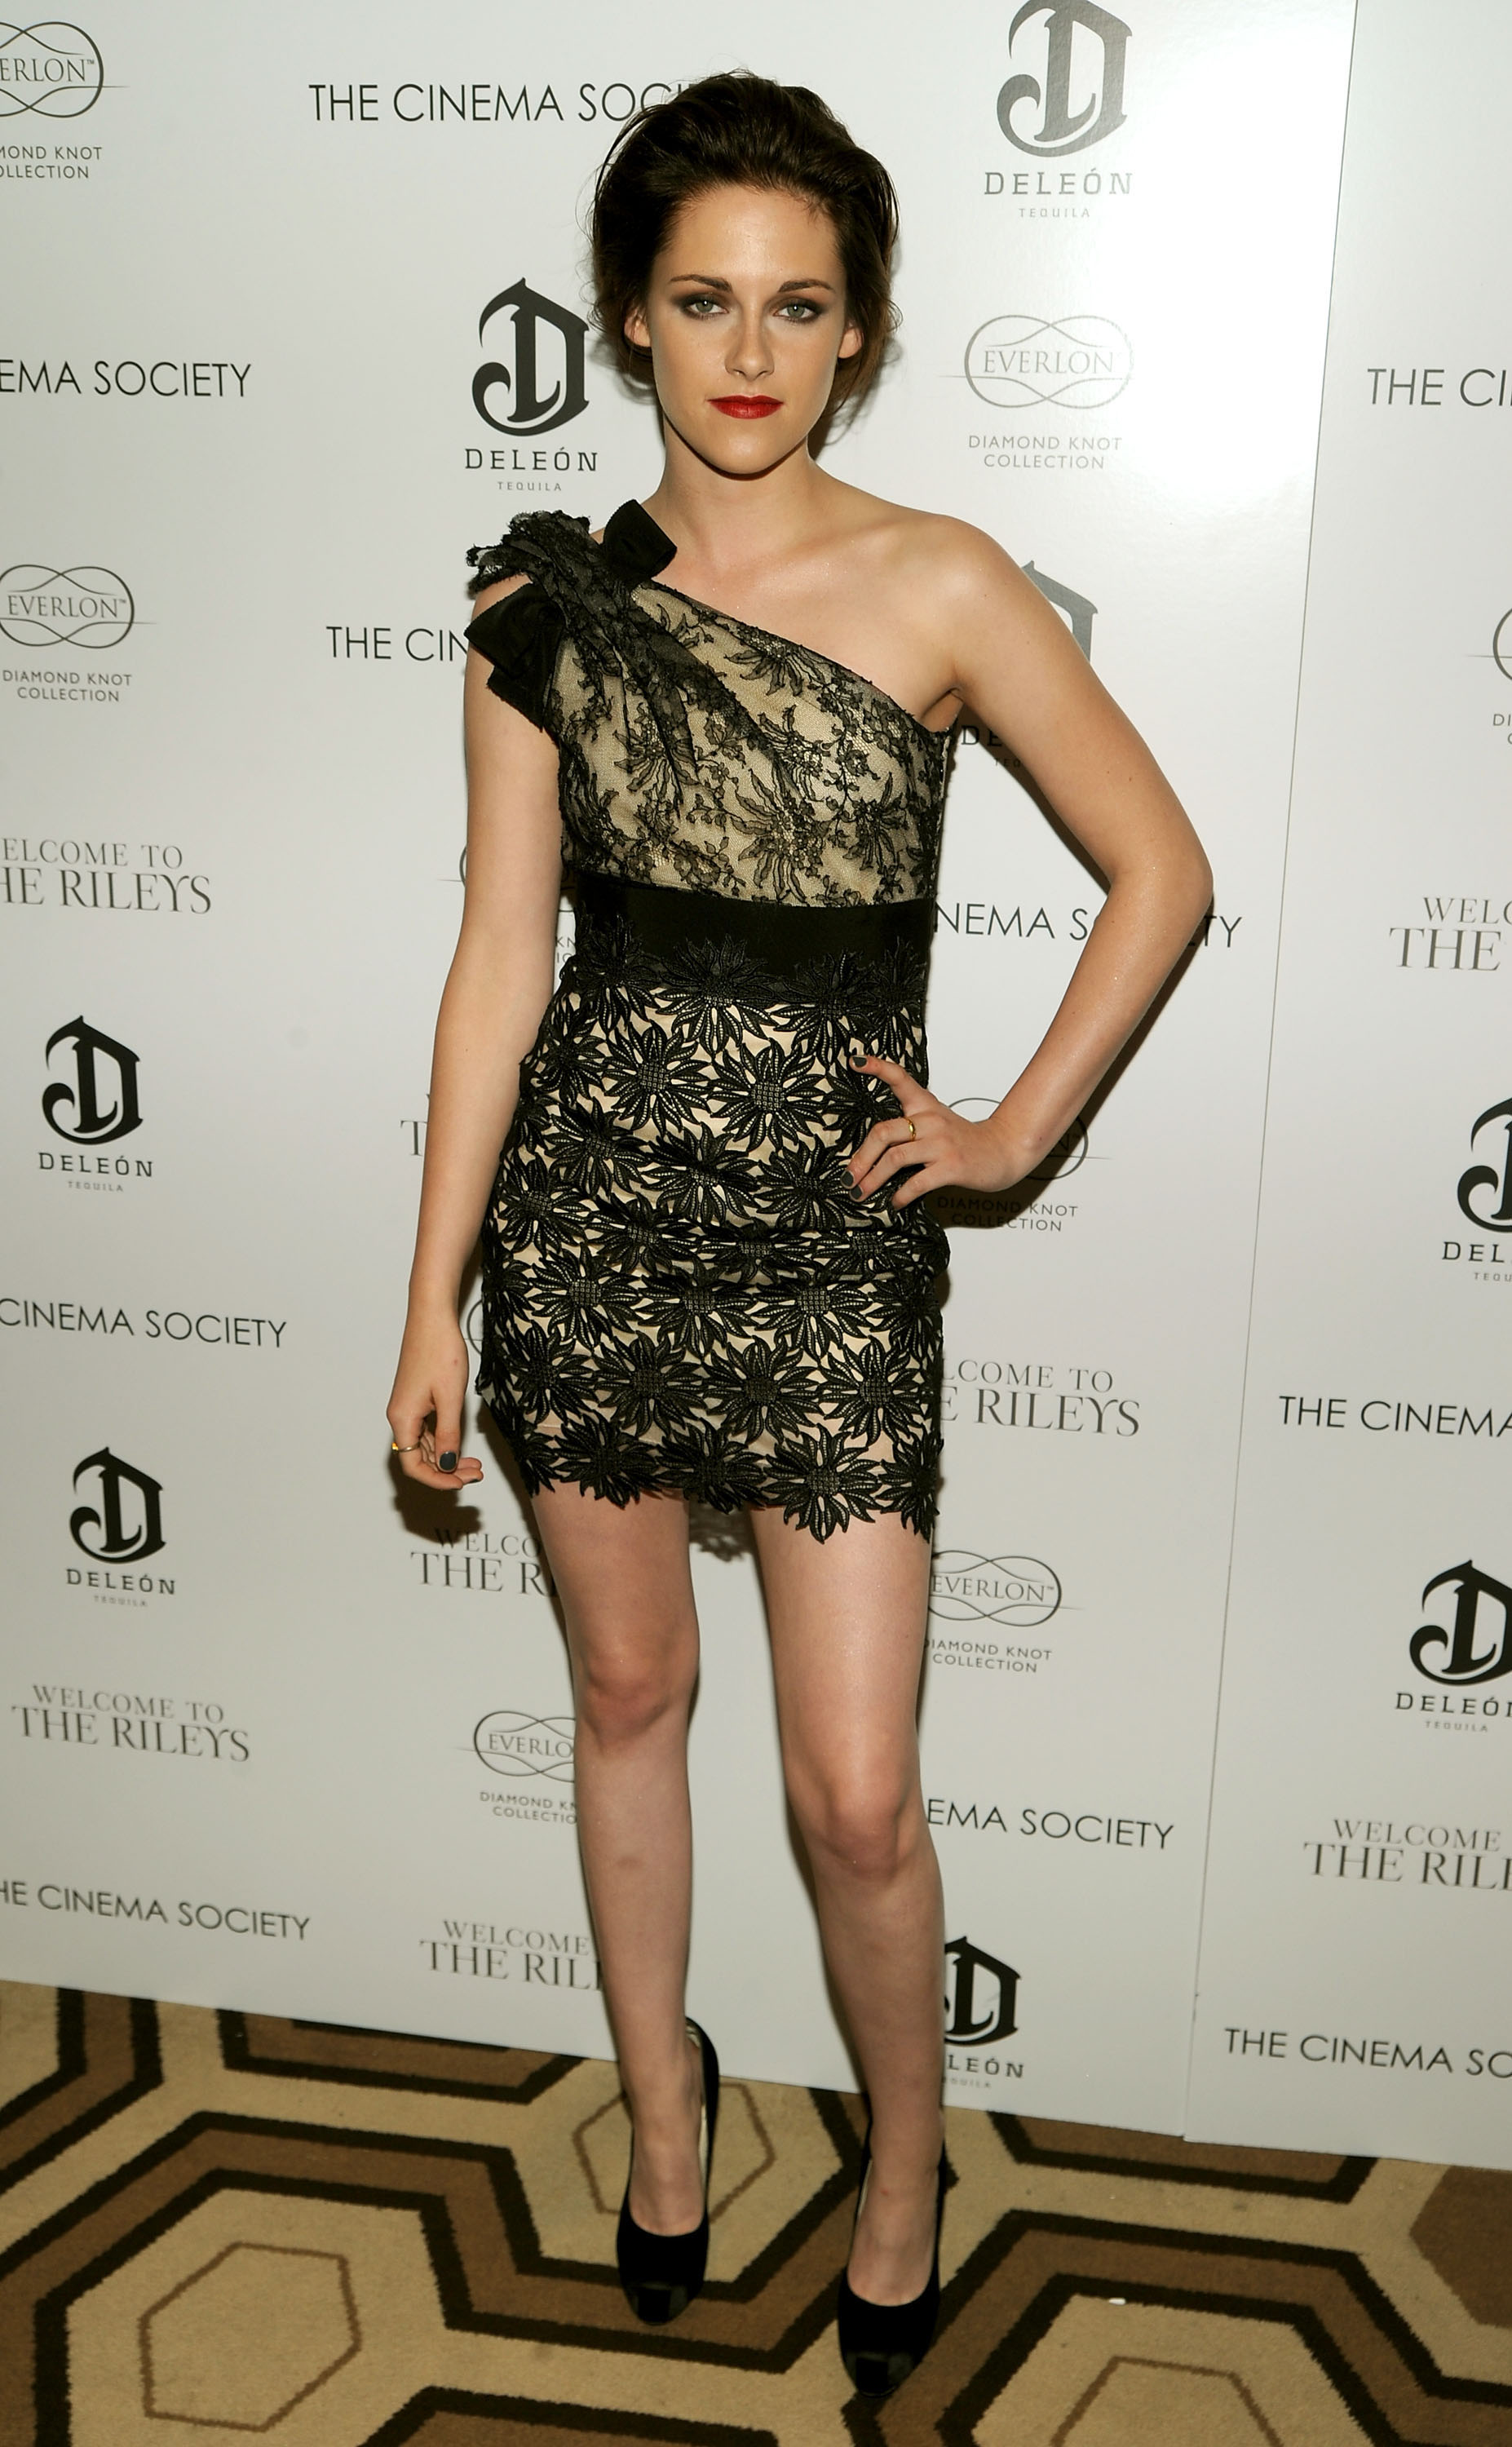 Kristen wowed at a screening of Welcome to the Rileys in a one-shoulder frock in October 2010.